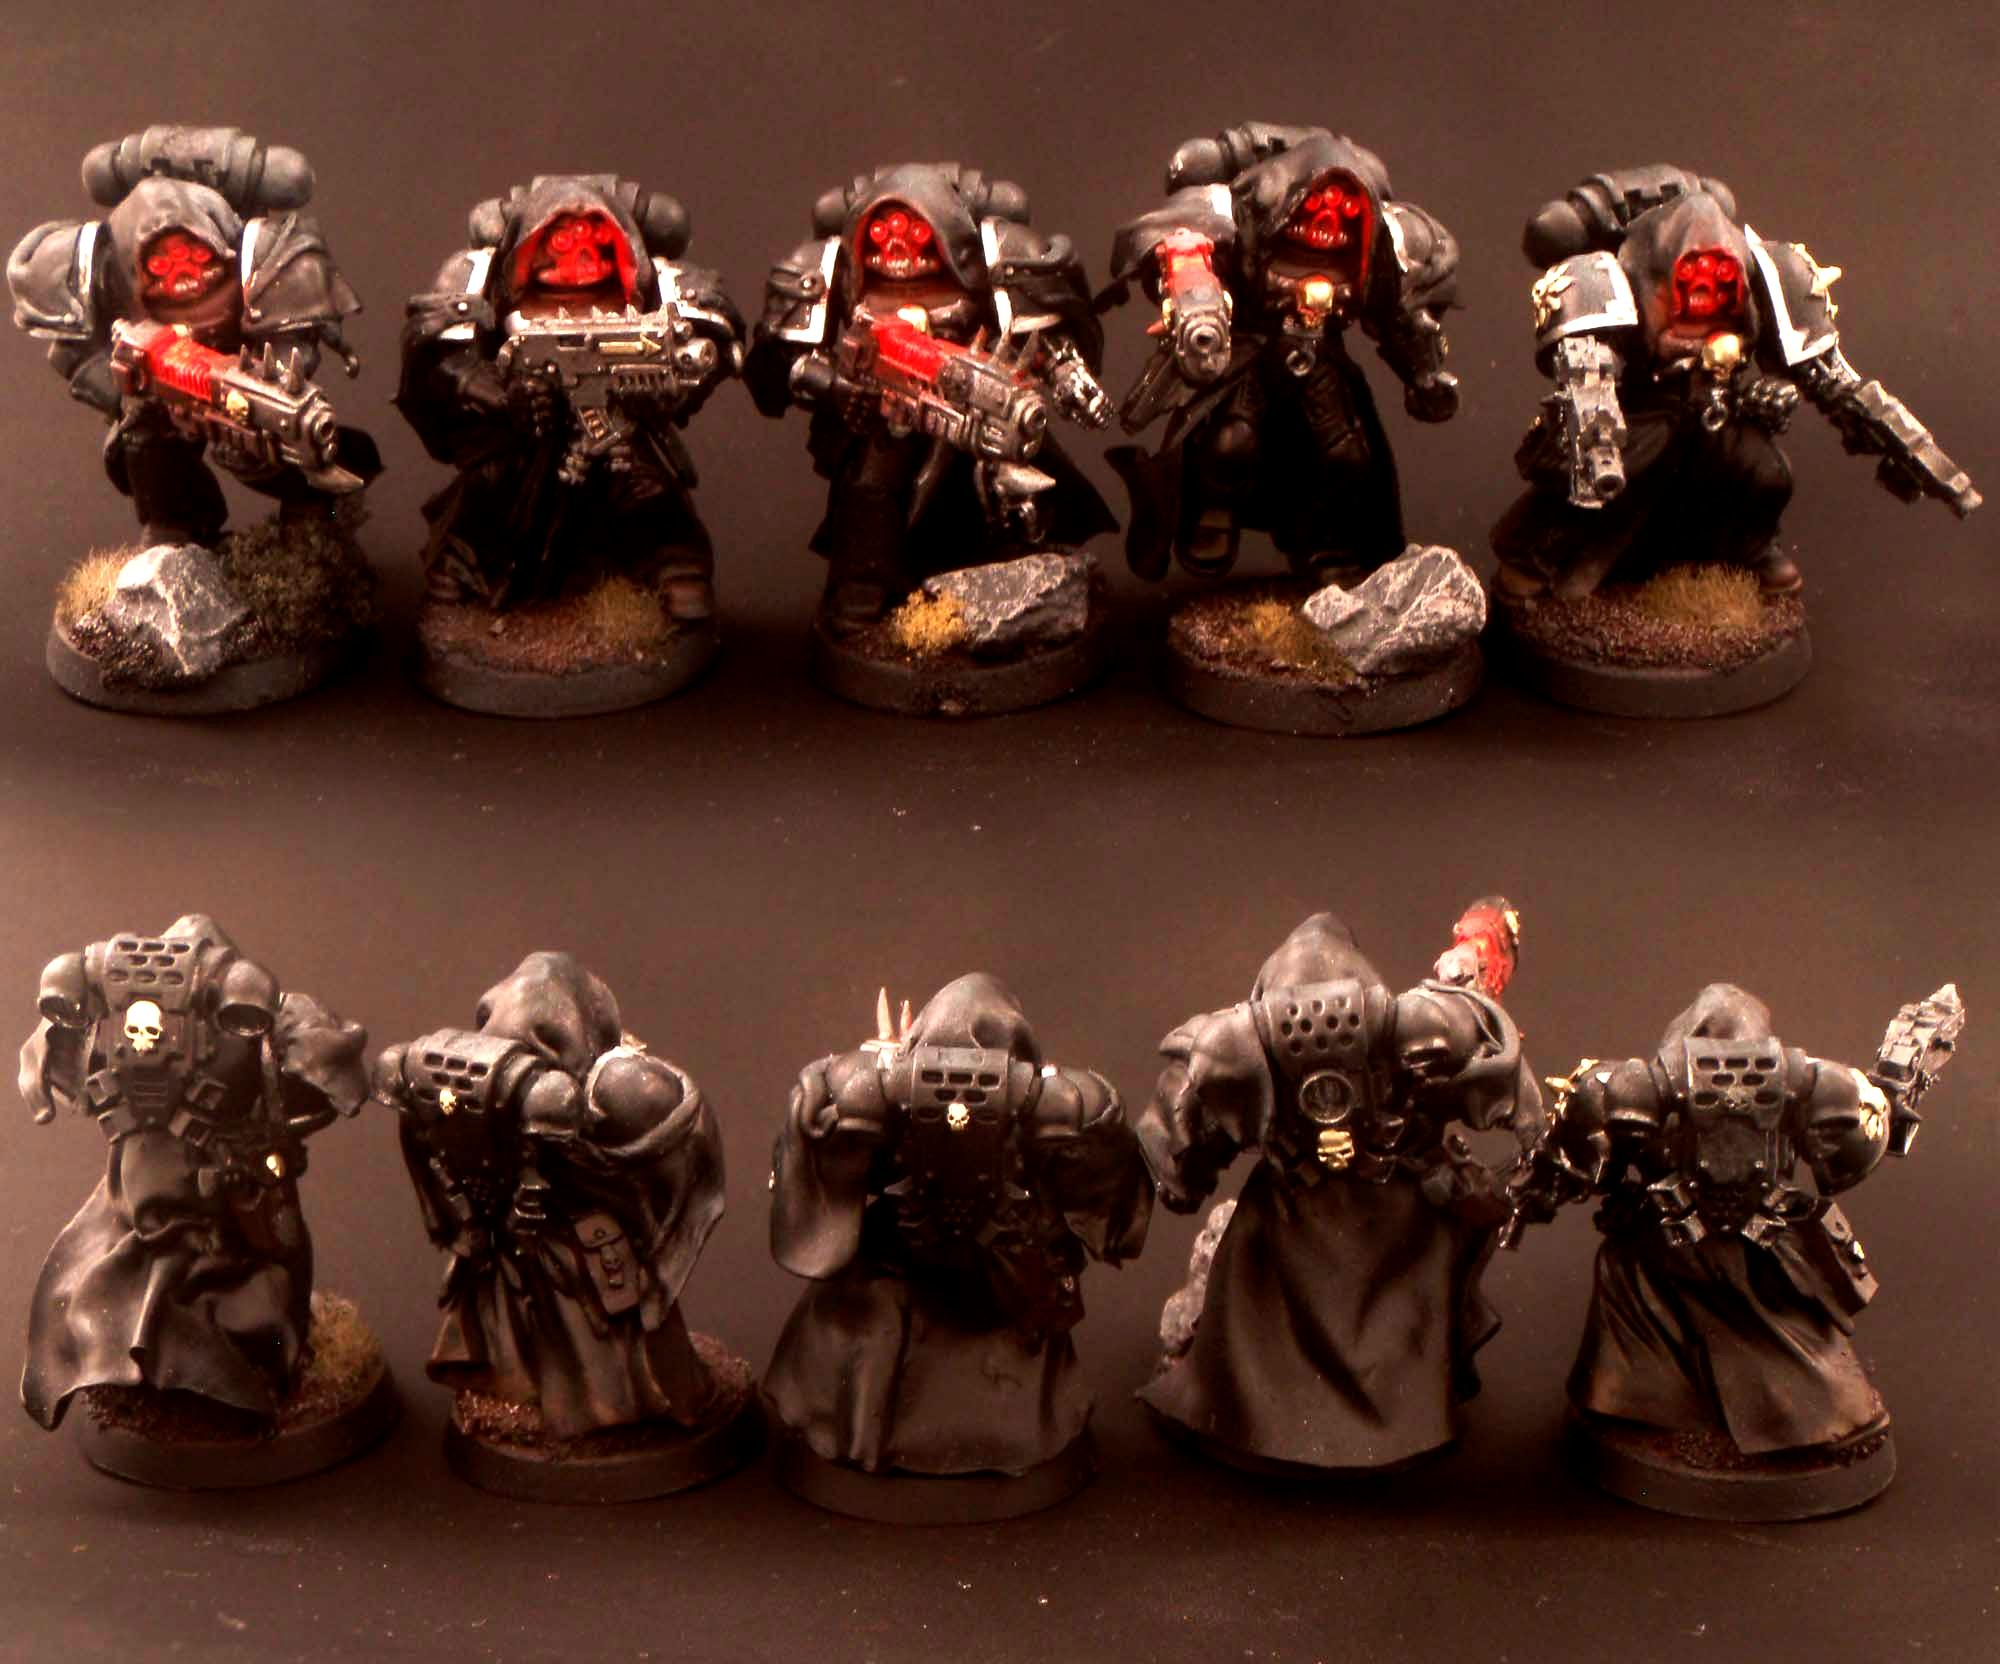 Black Legion, Chaos Space Marines, Chosen, Infiltrators, Warhammer 40,000